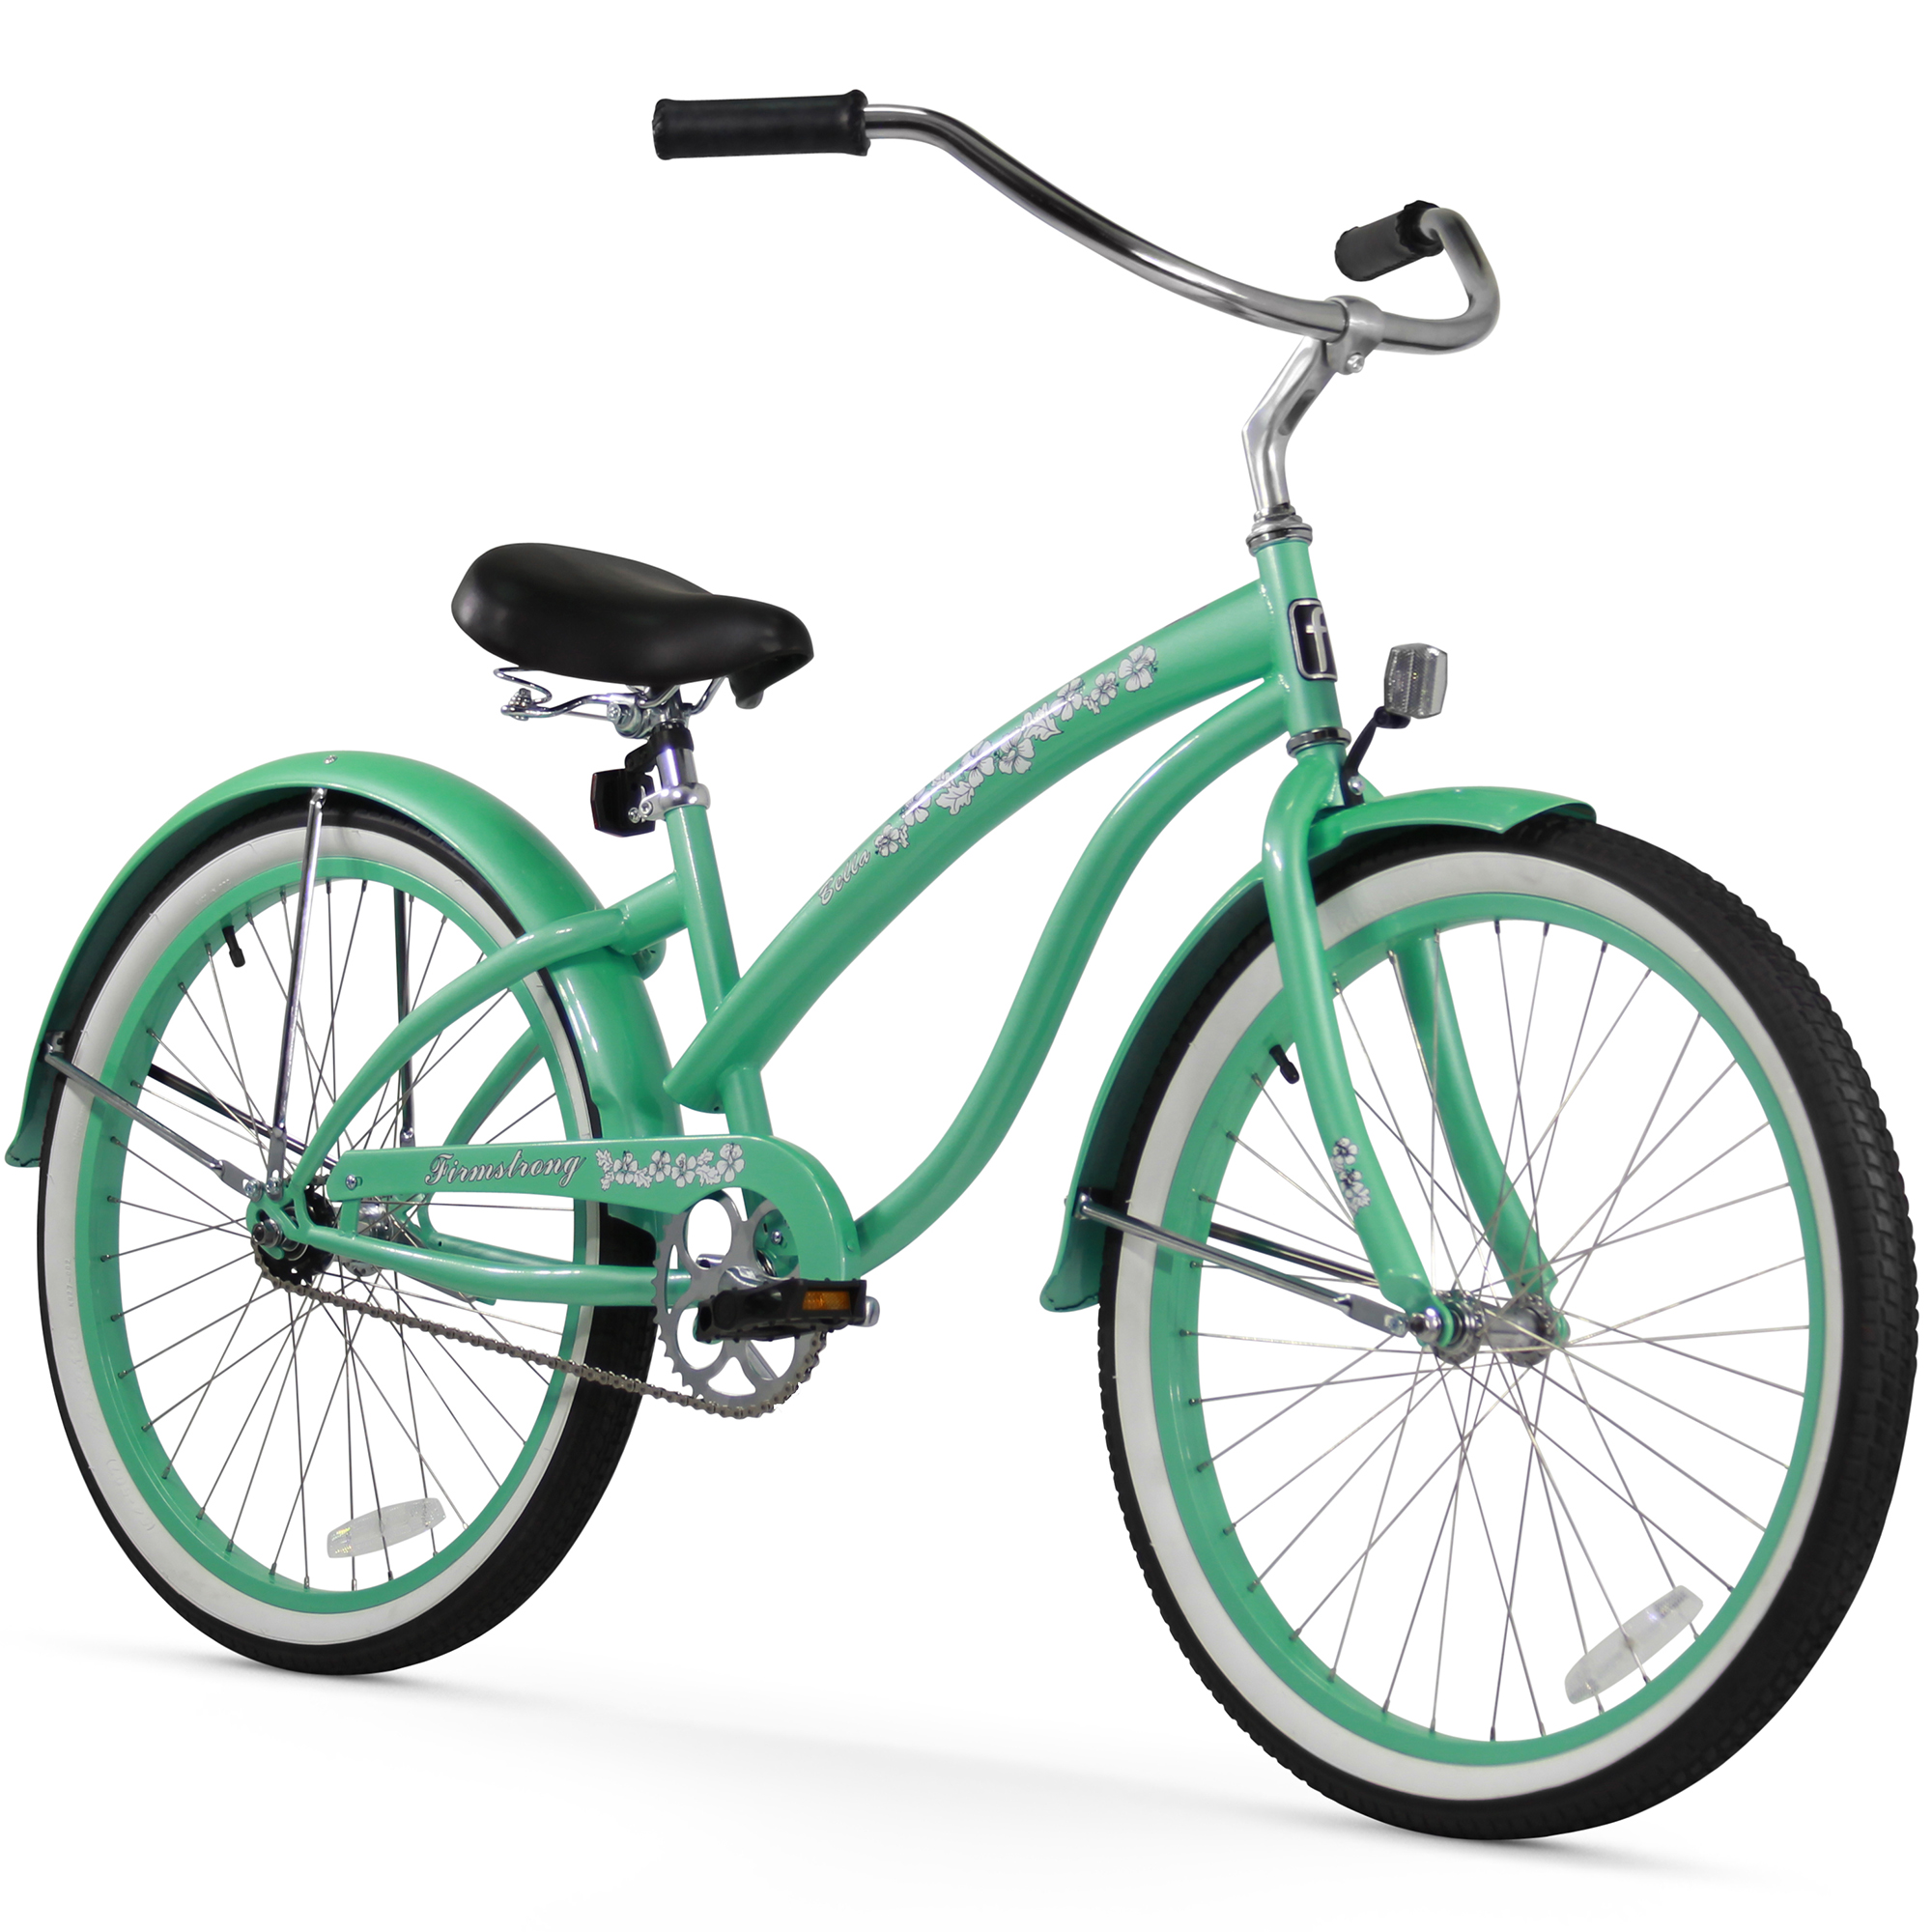 "Firmstrong Bella Classic, 26"", Women's, Single Speed, Mint Green"